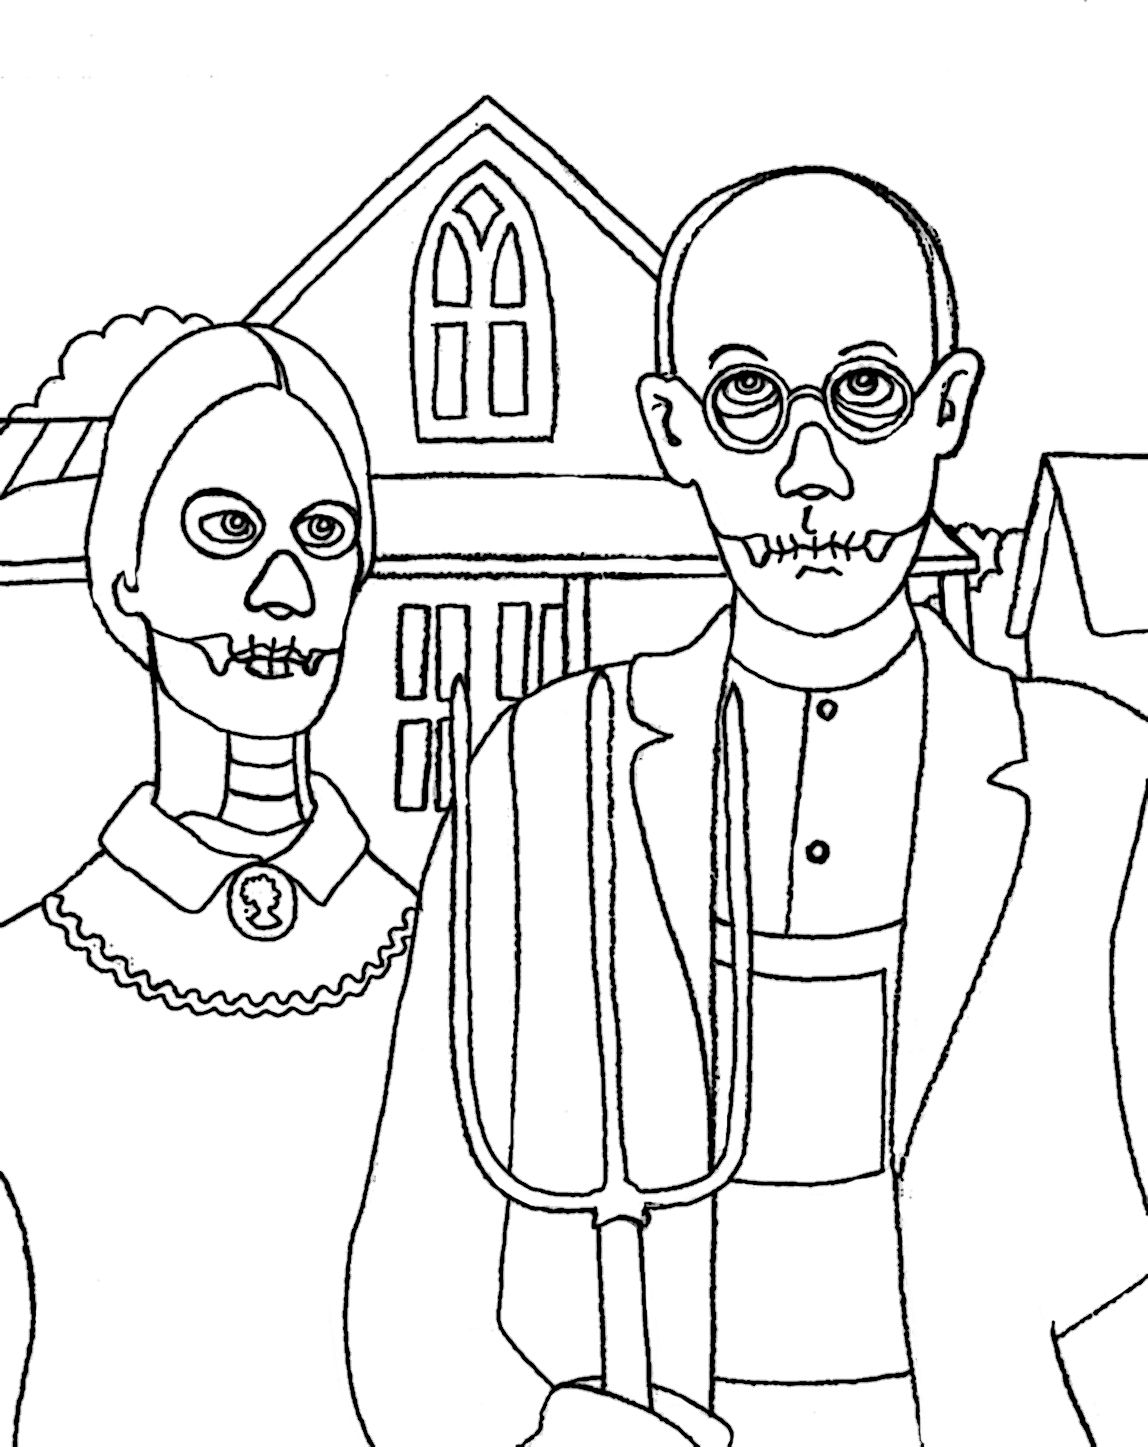 Wenchkin S Coloring Pages Skeletal American Gothic Coloring Pages Fairy Coloring Pages Angel Coloring Pages